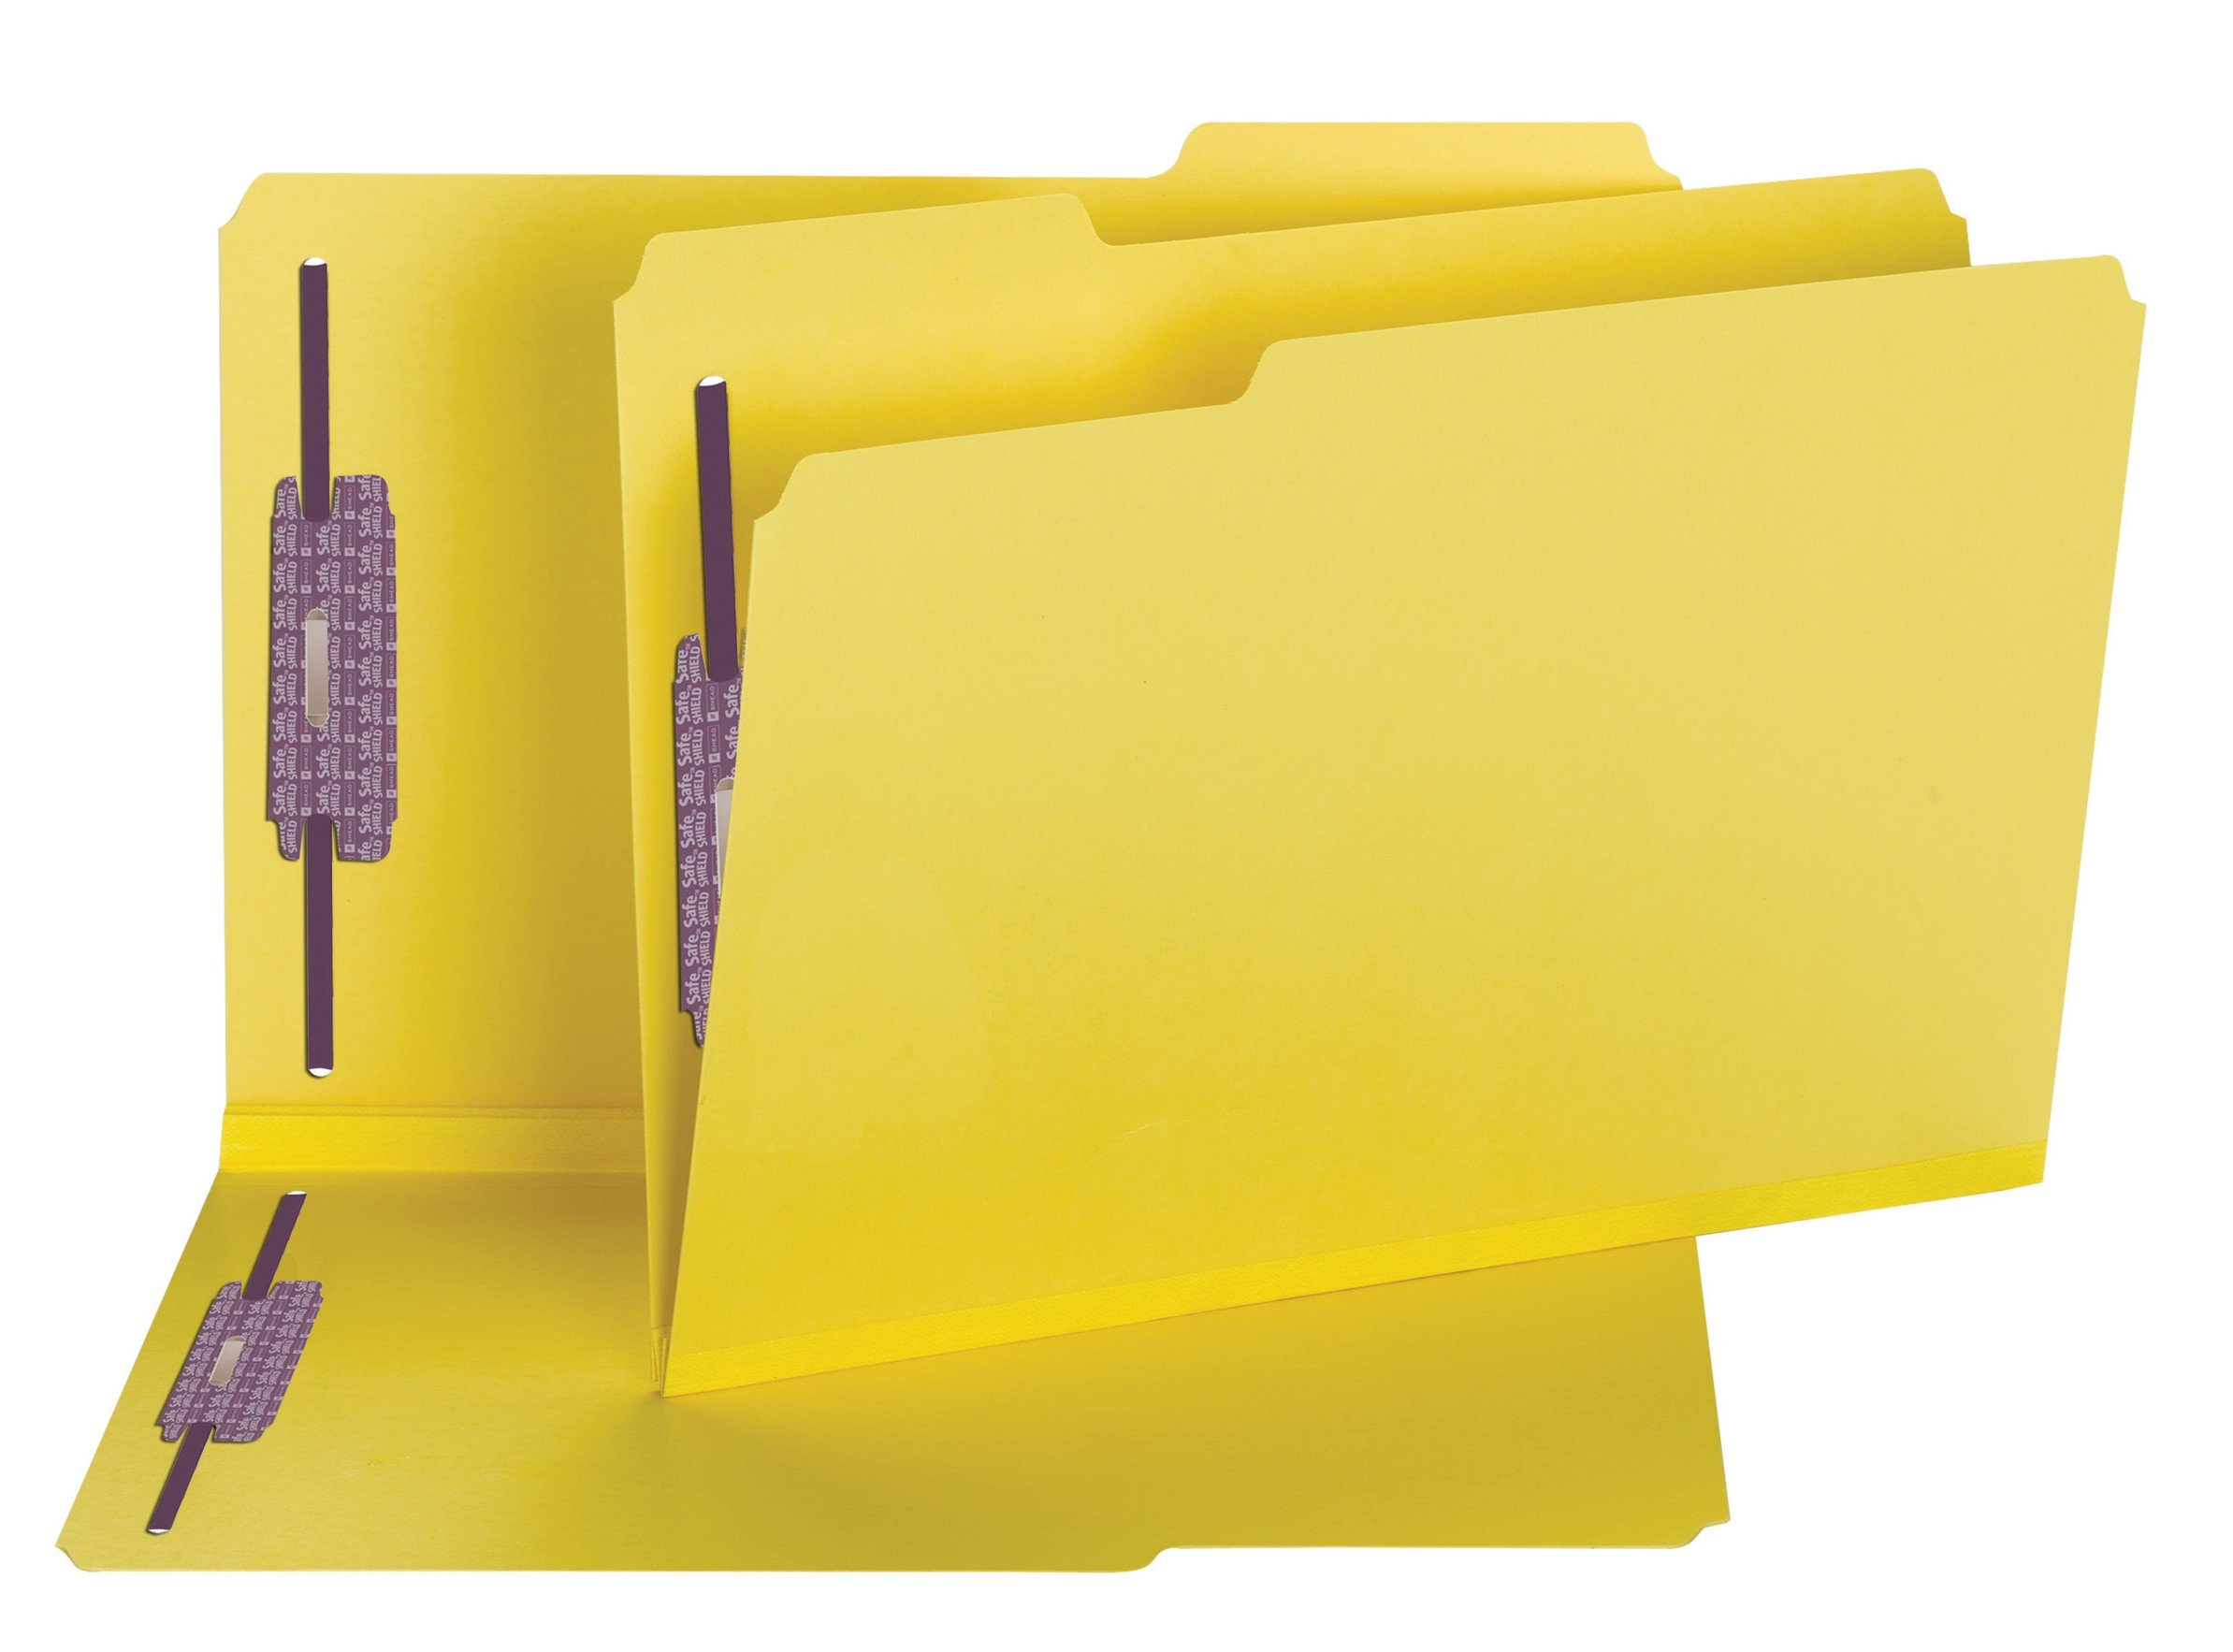 Smead Pressboard Fastener File Folder with SafeSHIELD Fasteners, 2 Fasteners, 1/3-Cut Tab, 2'' Expansion, Legal Size, Yellow, 25 per Box (19939)